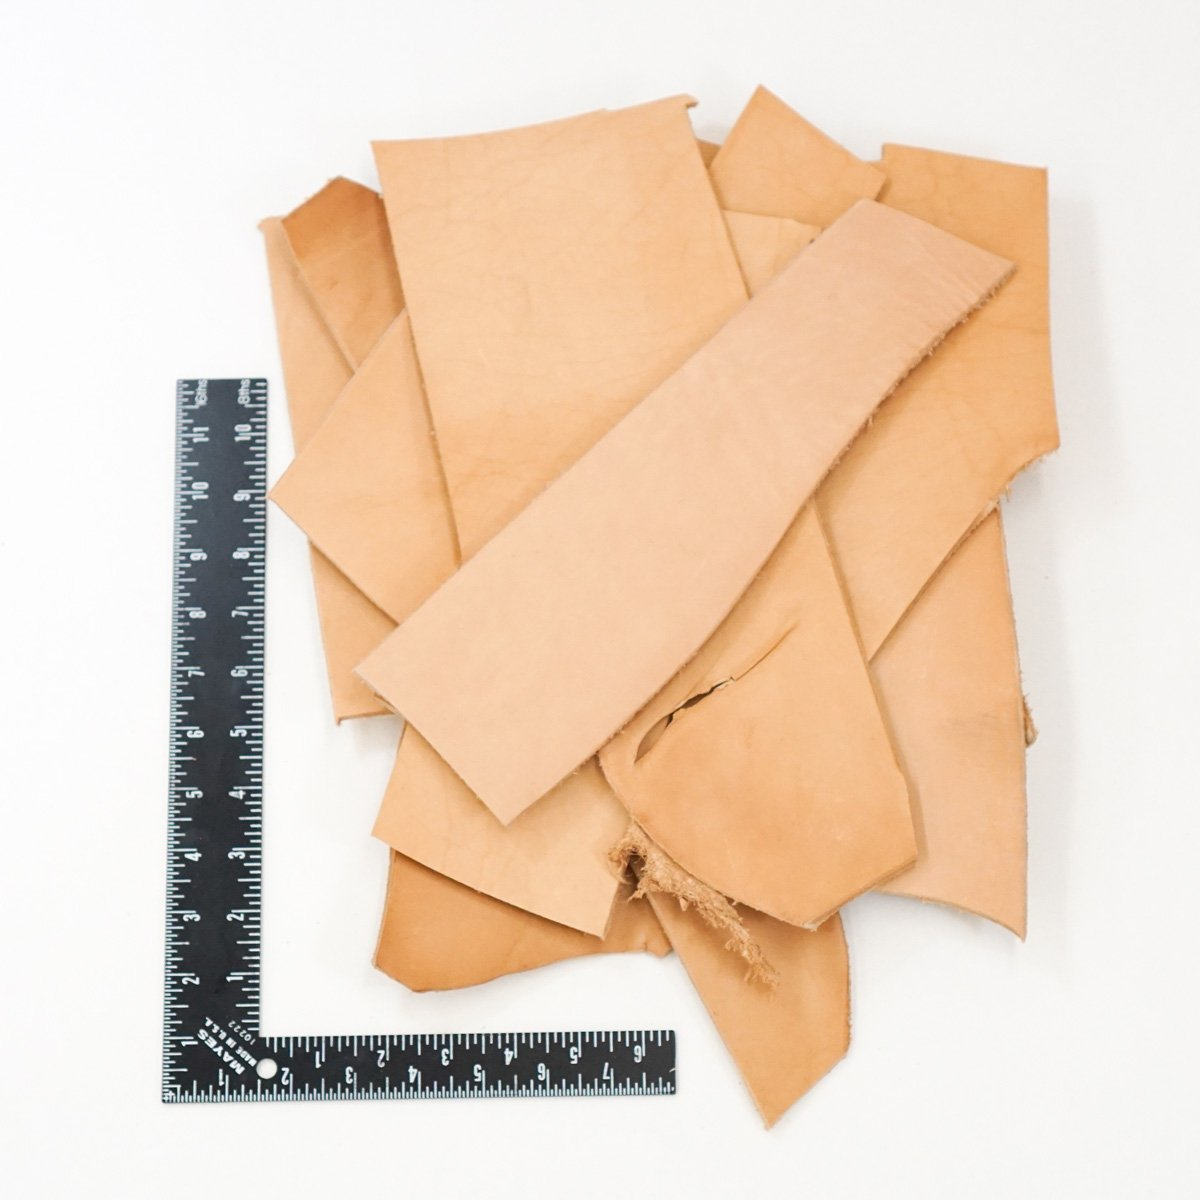 2 LB Leather Scrap Bags (Heavyweight Veg Tan)